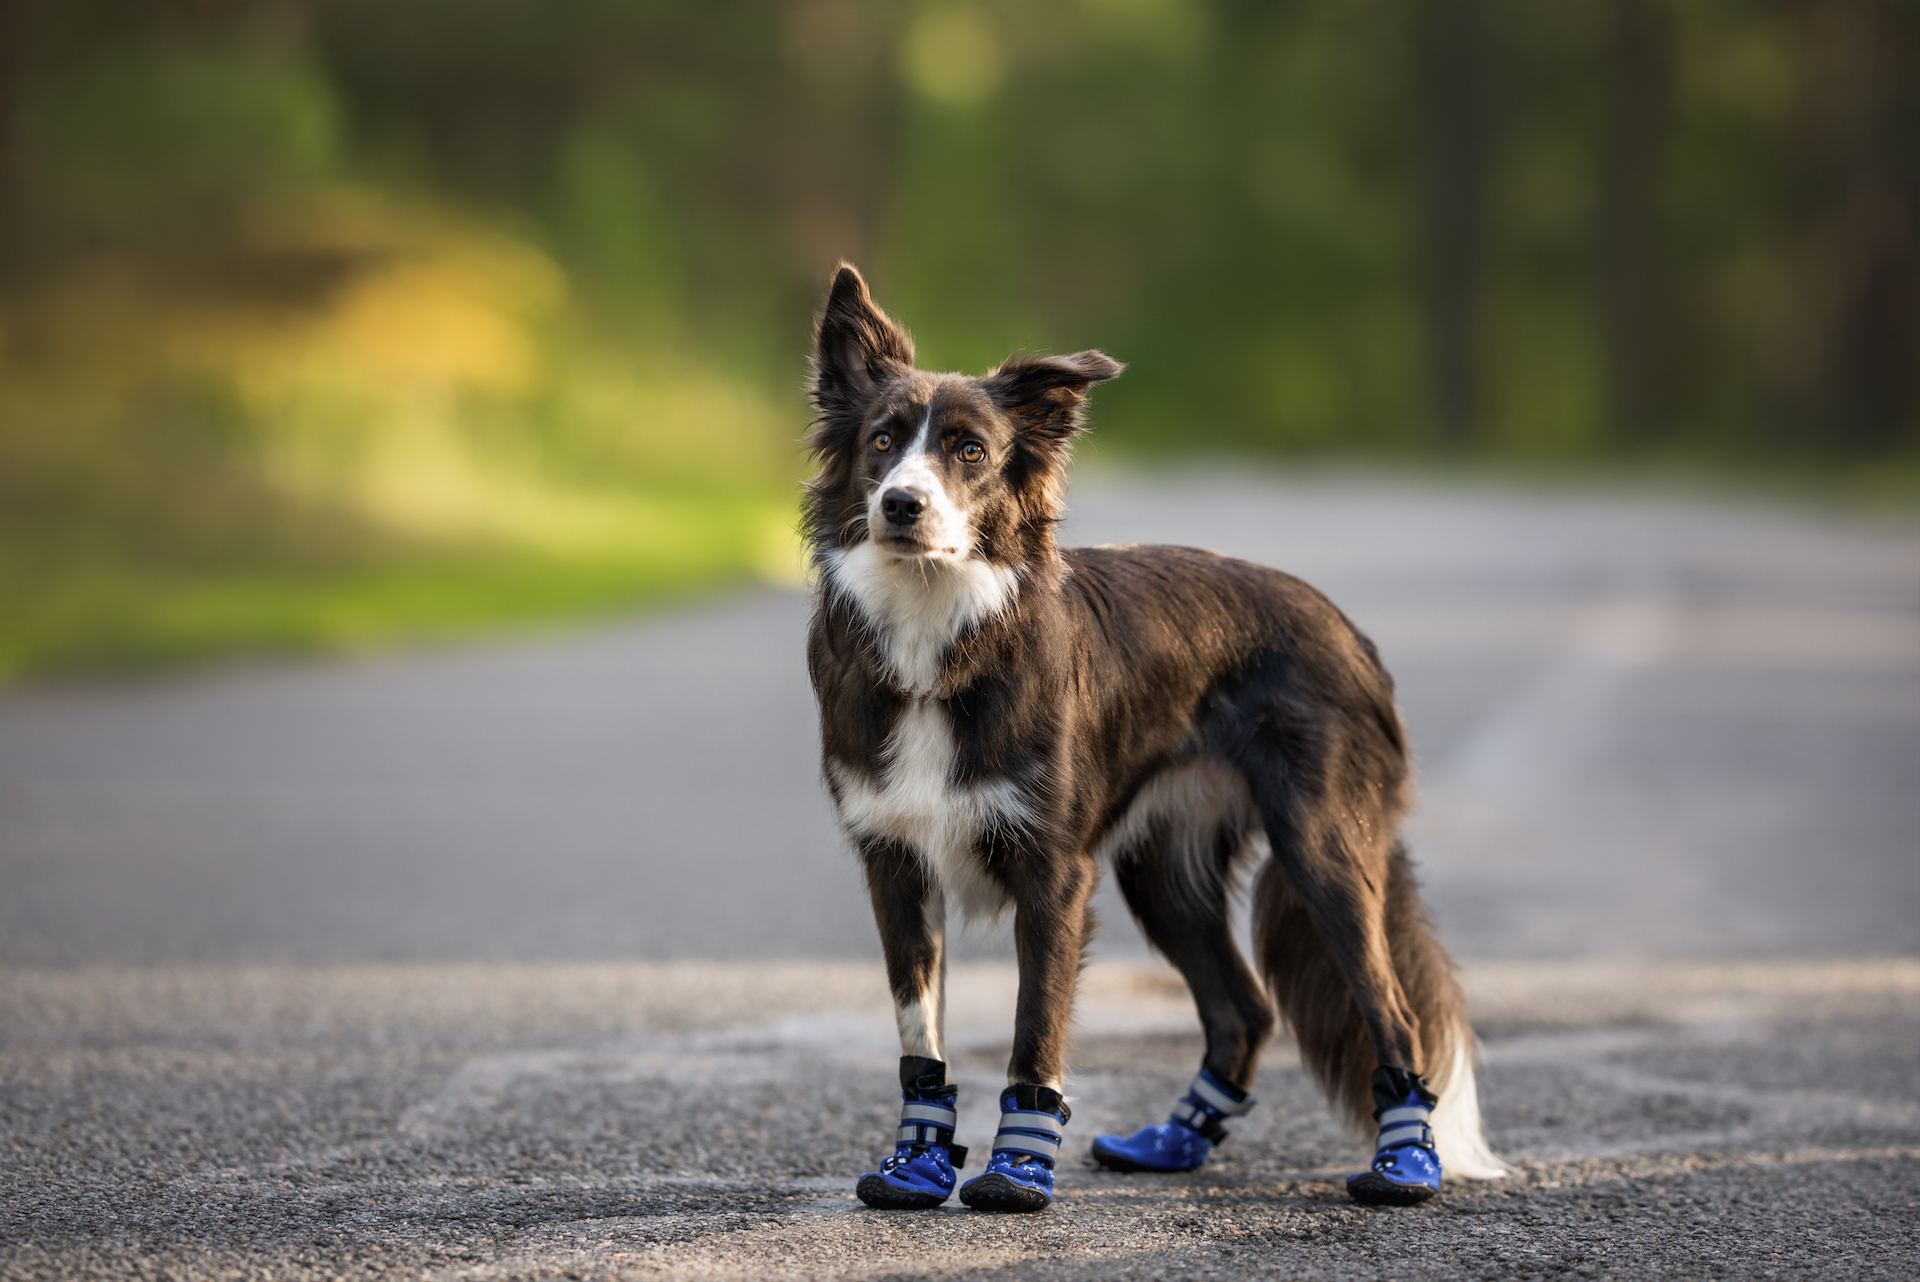 The 7 Best Dog Shoes/Boots For Hot Pavement [For Summertime Walks]